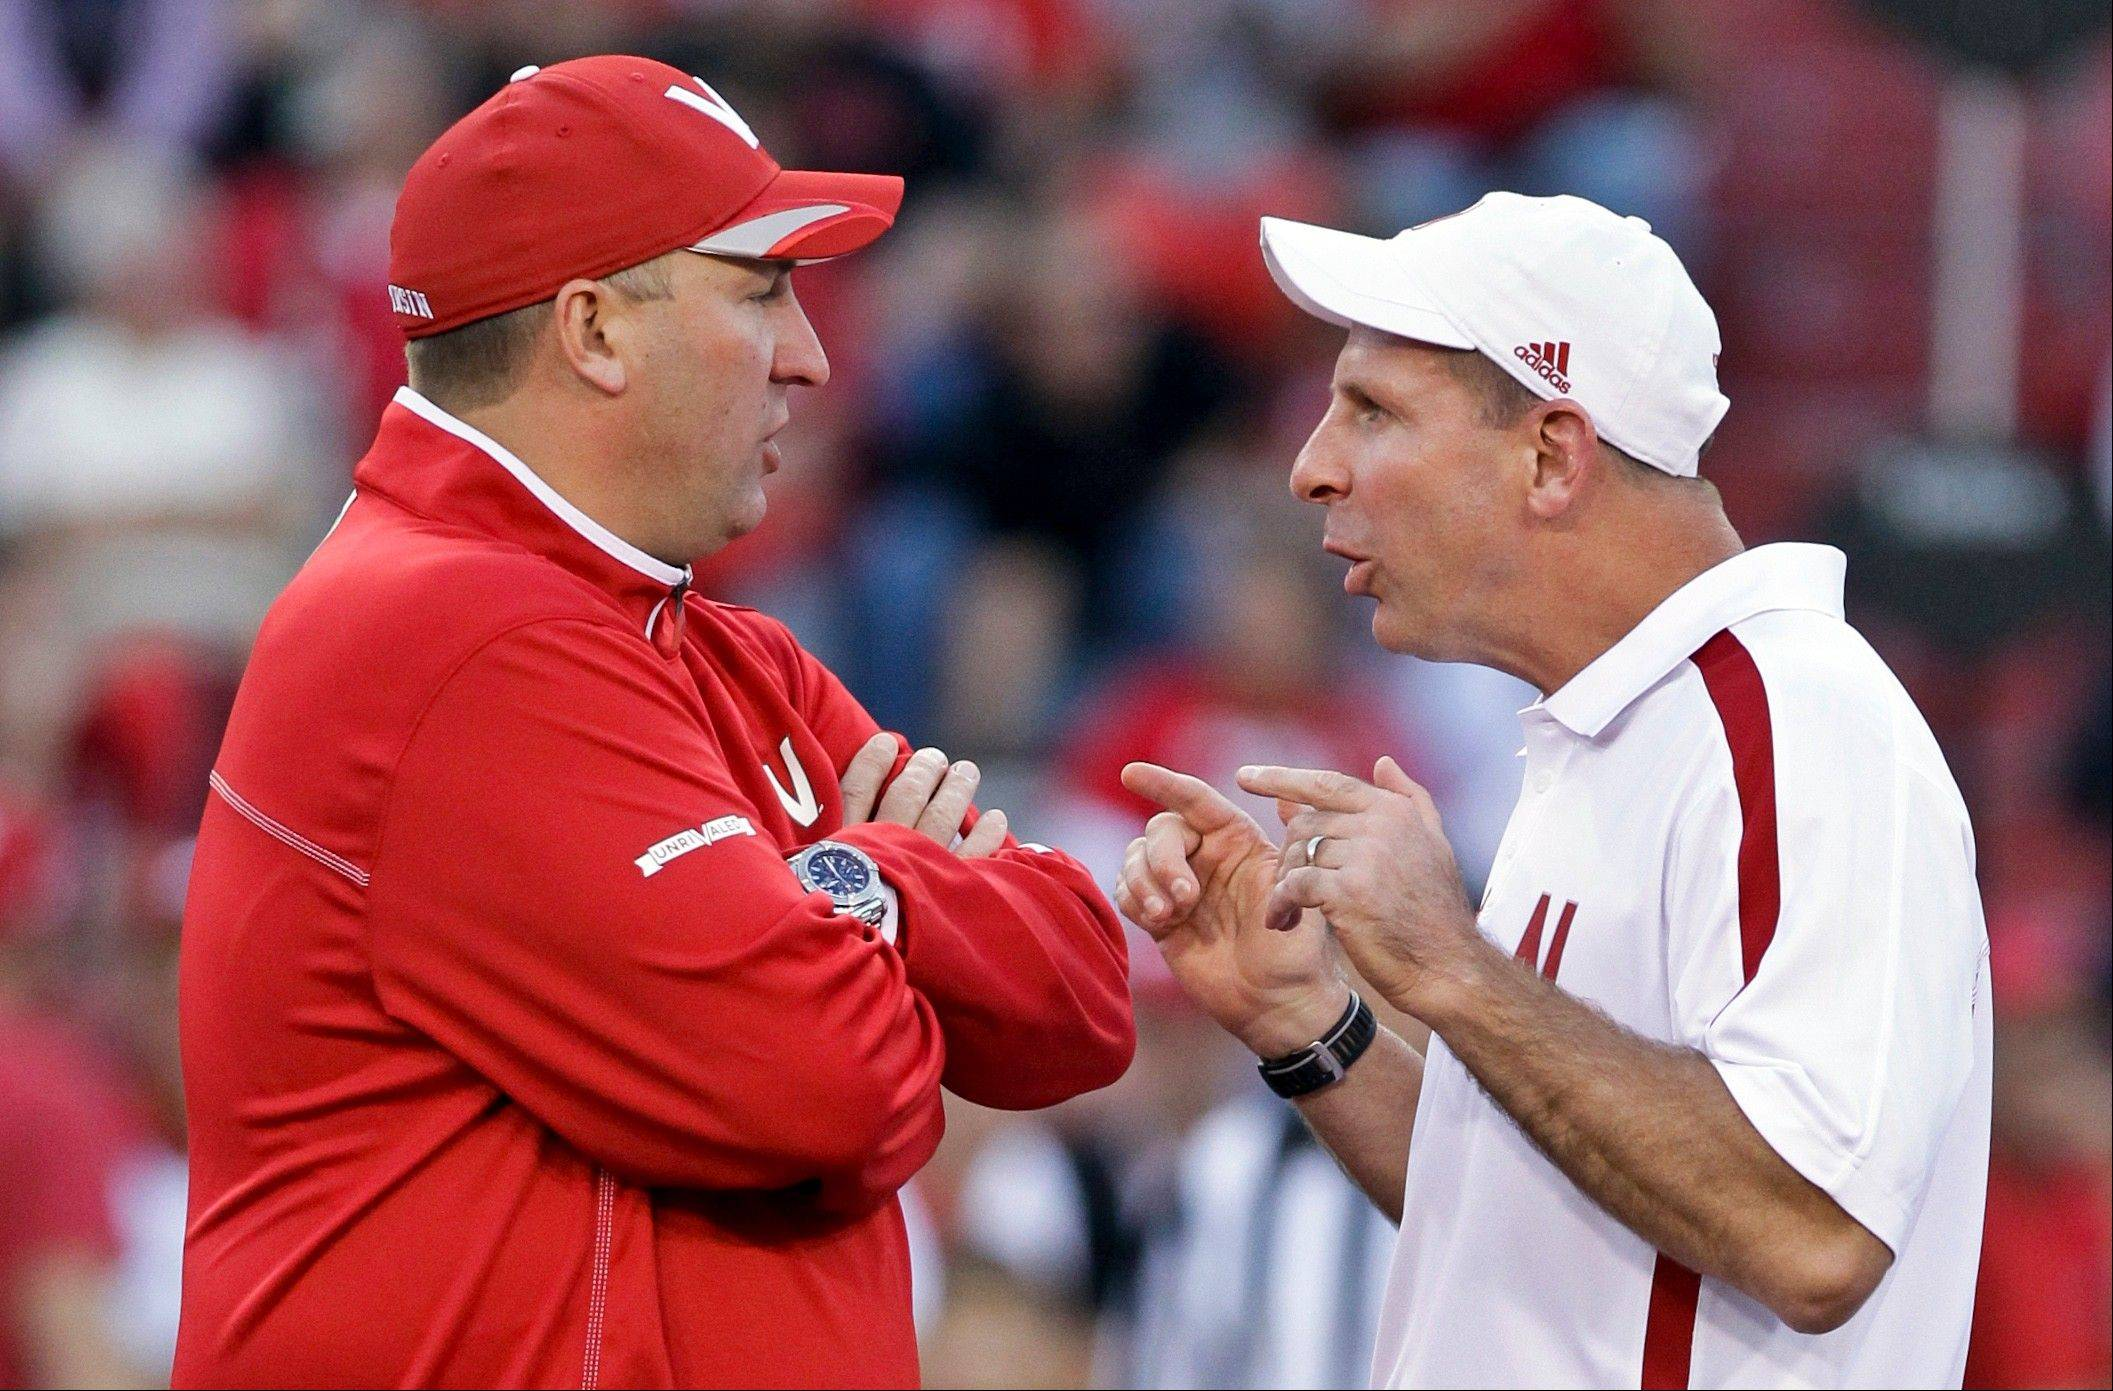 Wisconsin head coach Bret Bielema, left, and Nebraska head coach Bo Pelini chat prior to their game in Lincoln. With Ohio State and Penn State both ineligible for the postseason, though, Wisconsin will represent the Leaders Division in the title game. Wisconsin plays No. 14 Nebraska on Saturday in the Big Ten Championship.